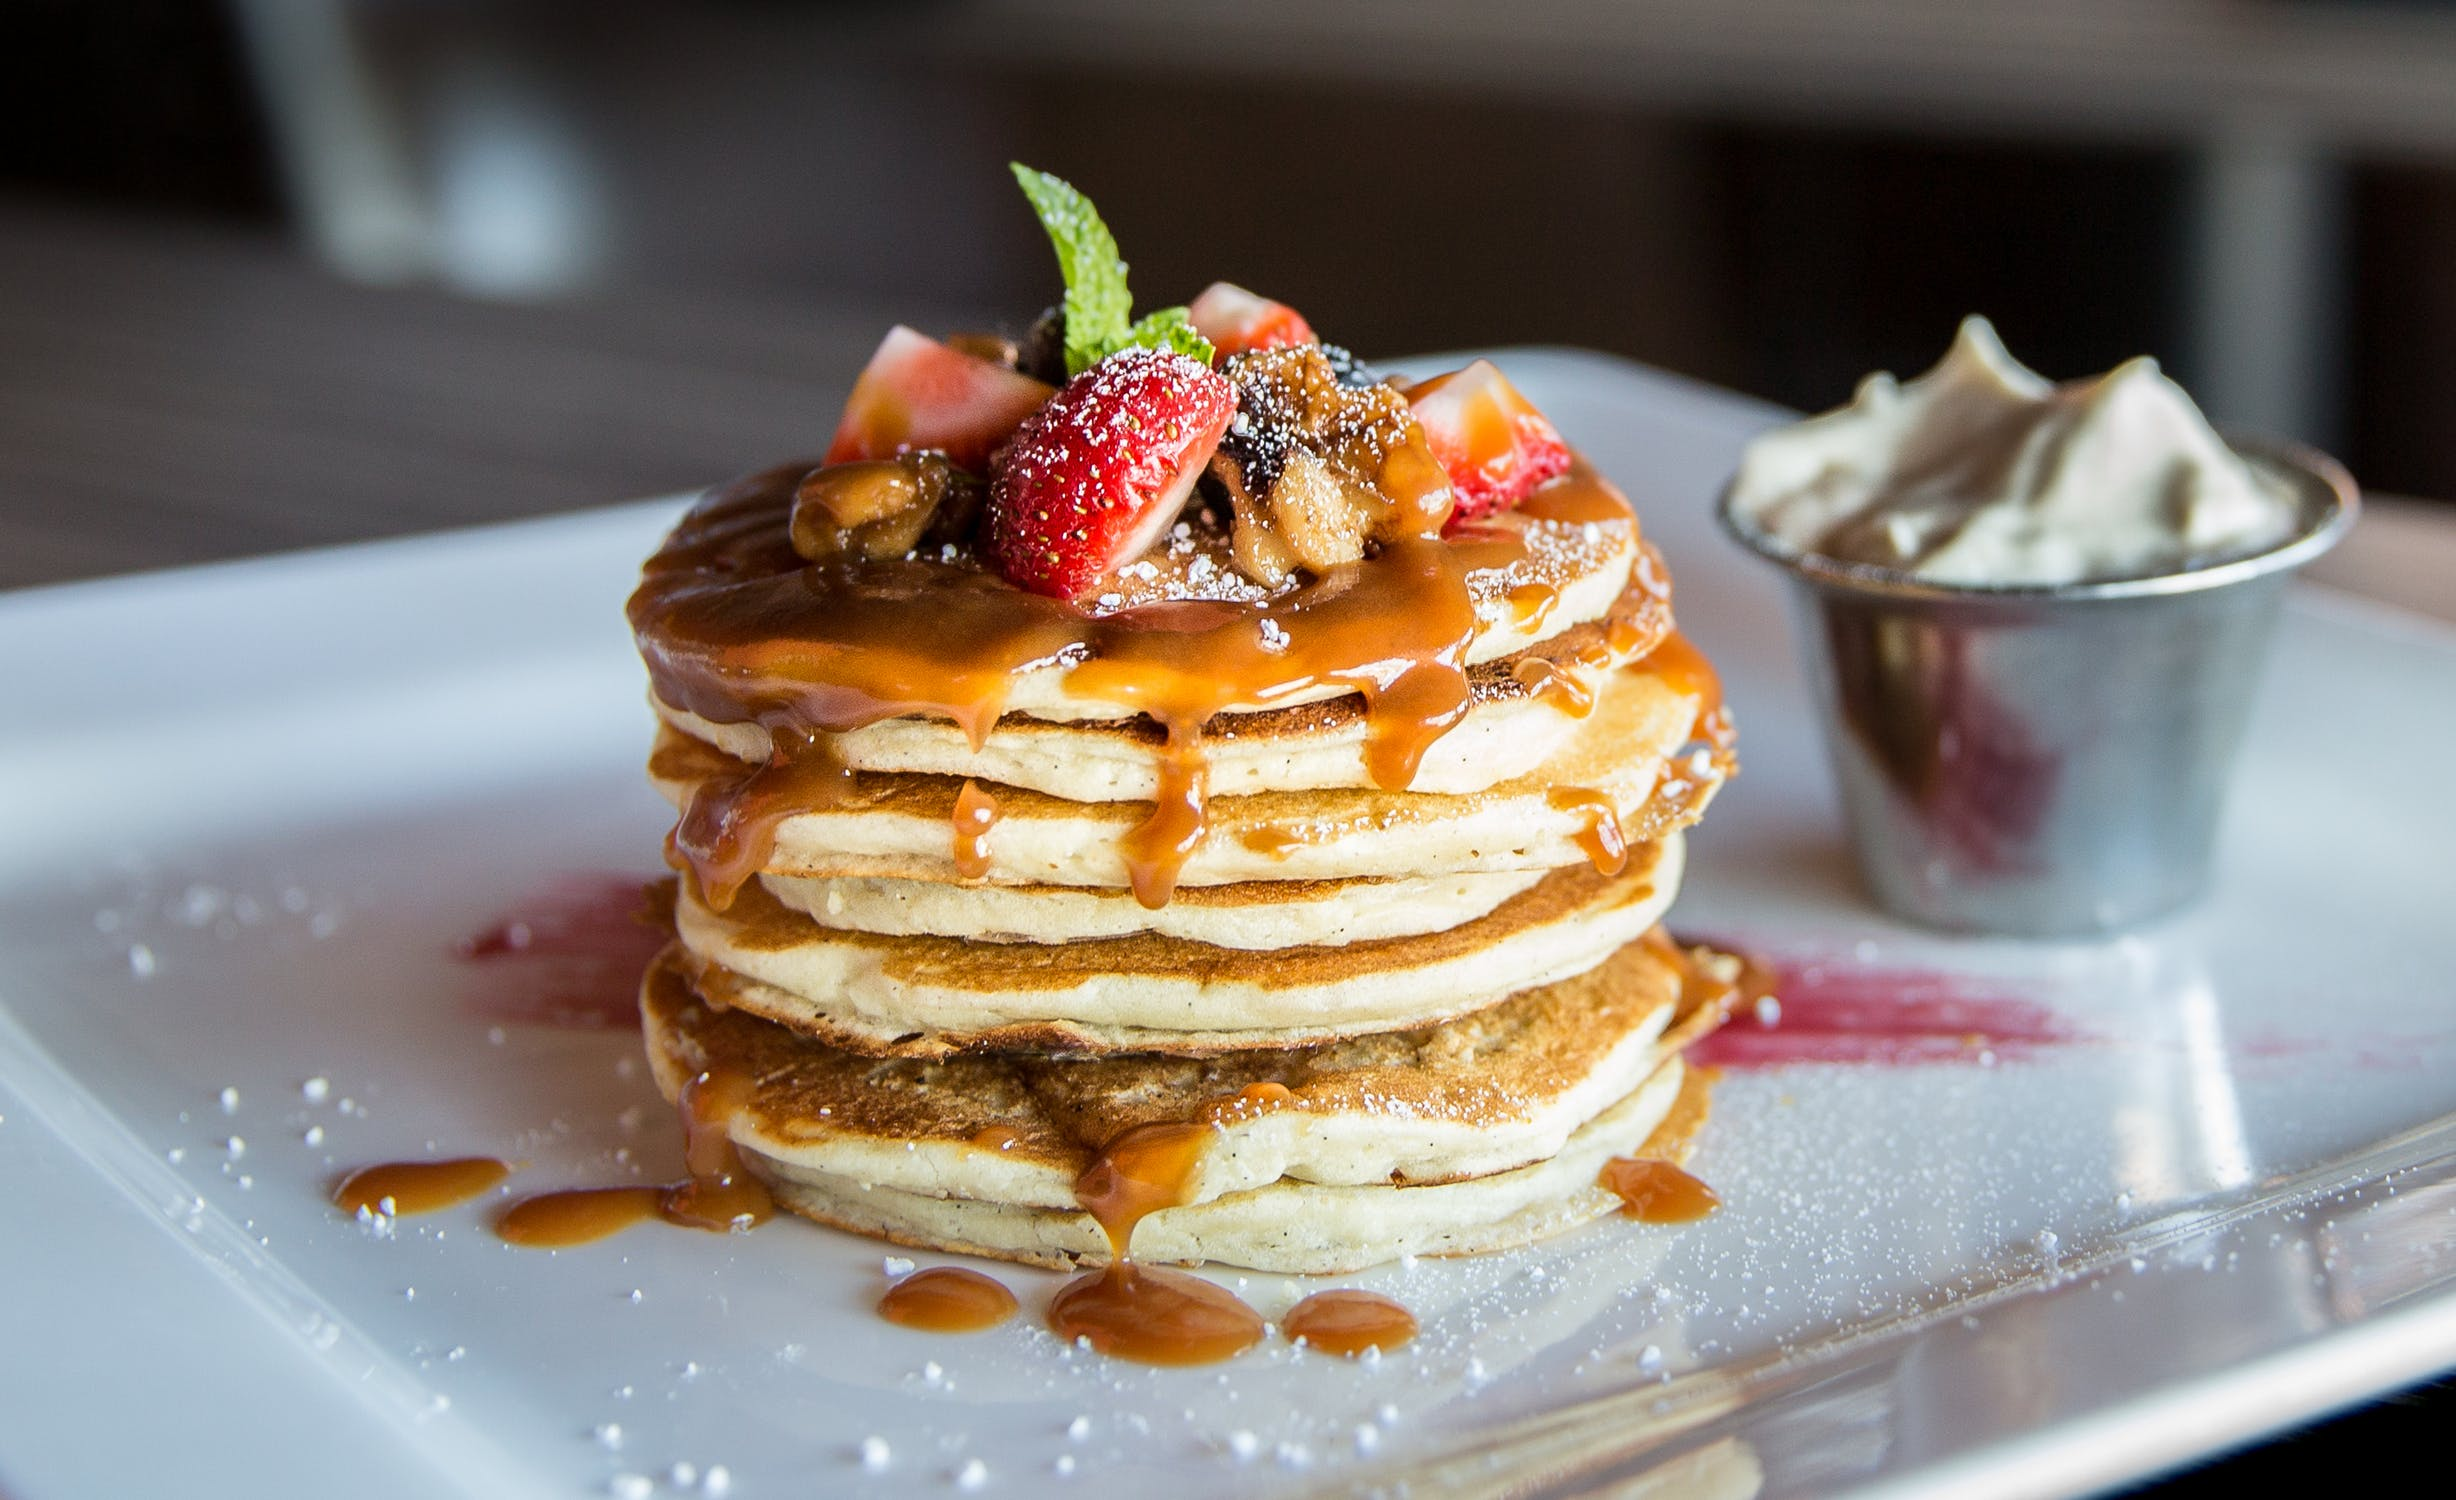 A stack of pancakes with strawberries on top and syrup dripping down the sides